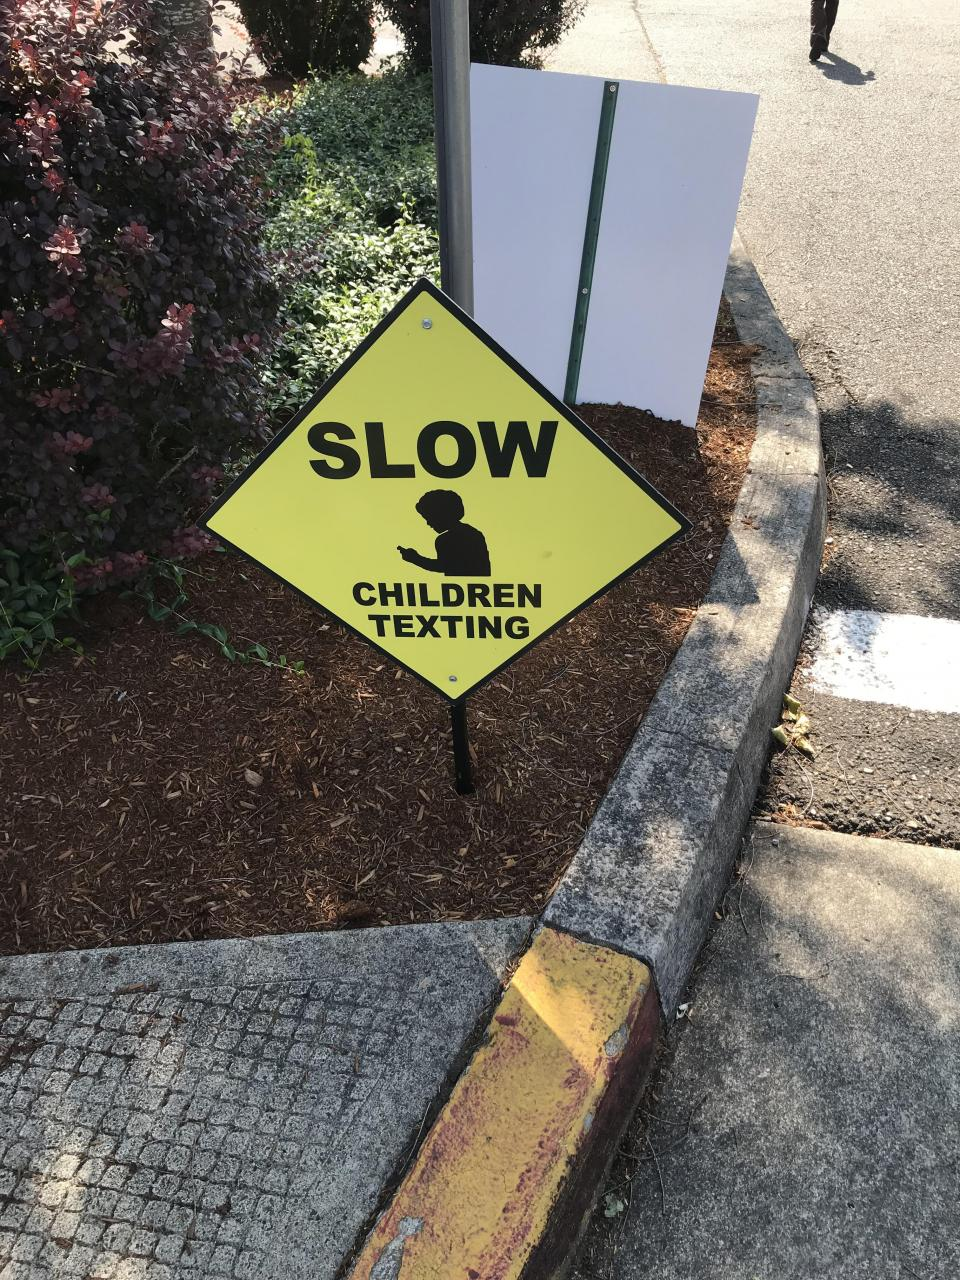 A local crosswalk has this sign instead of a crossing sign